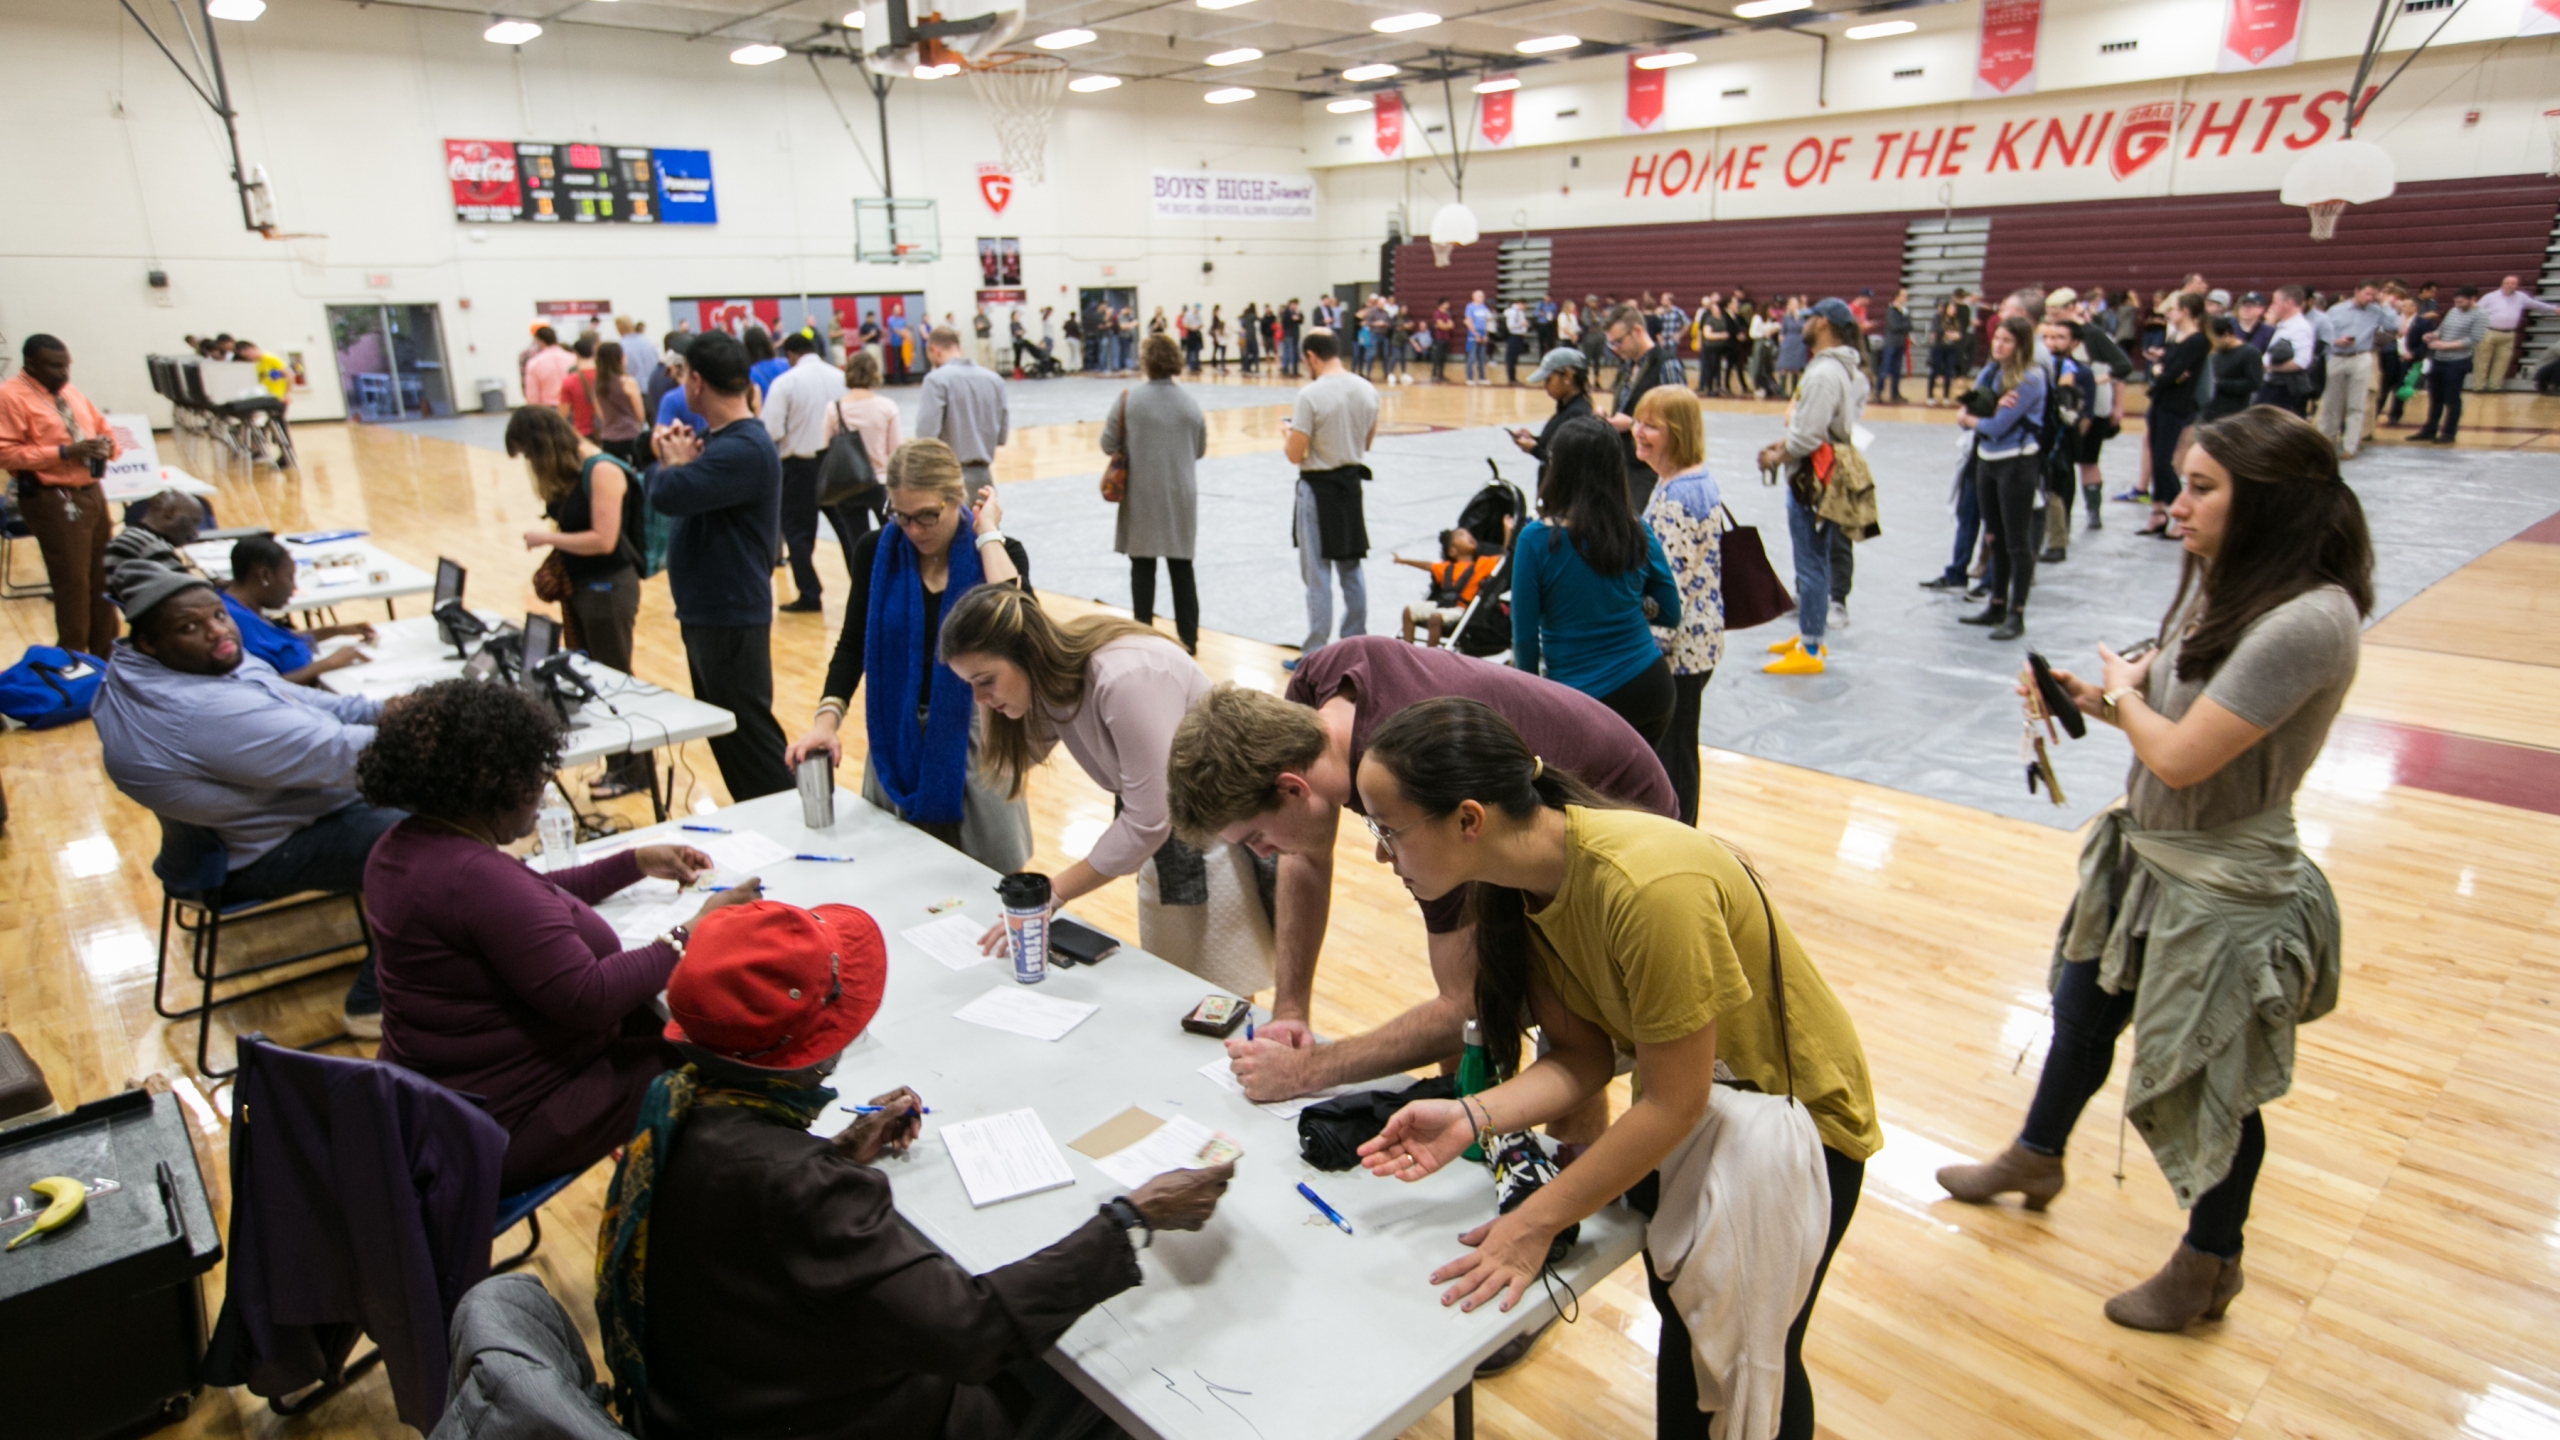 Voters line up to cast their ballots at a polling station set up at Grady High School for the mid-term elections on Nov. 6, 2018, in Atlanta, Georgia. (Credit: Jessica McGowan/Getty Images)